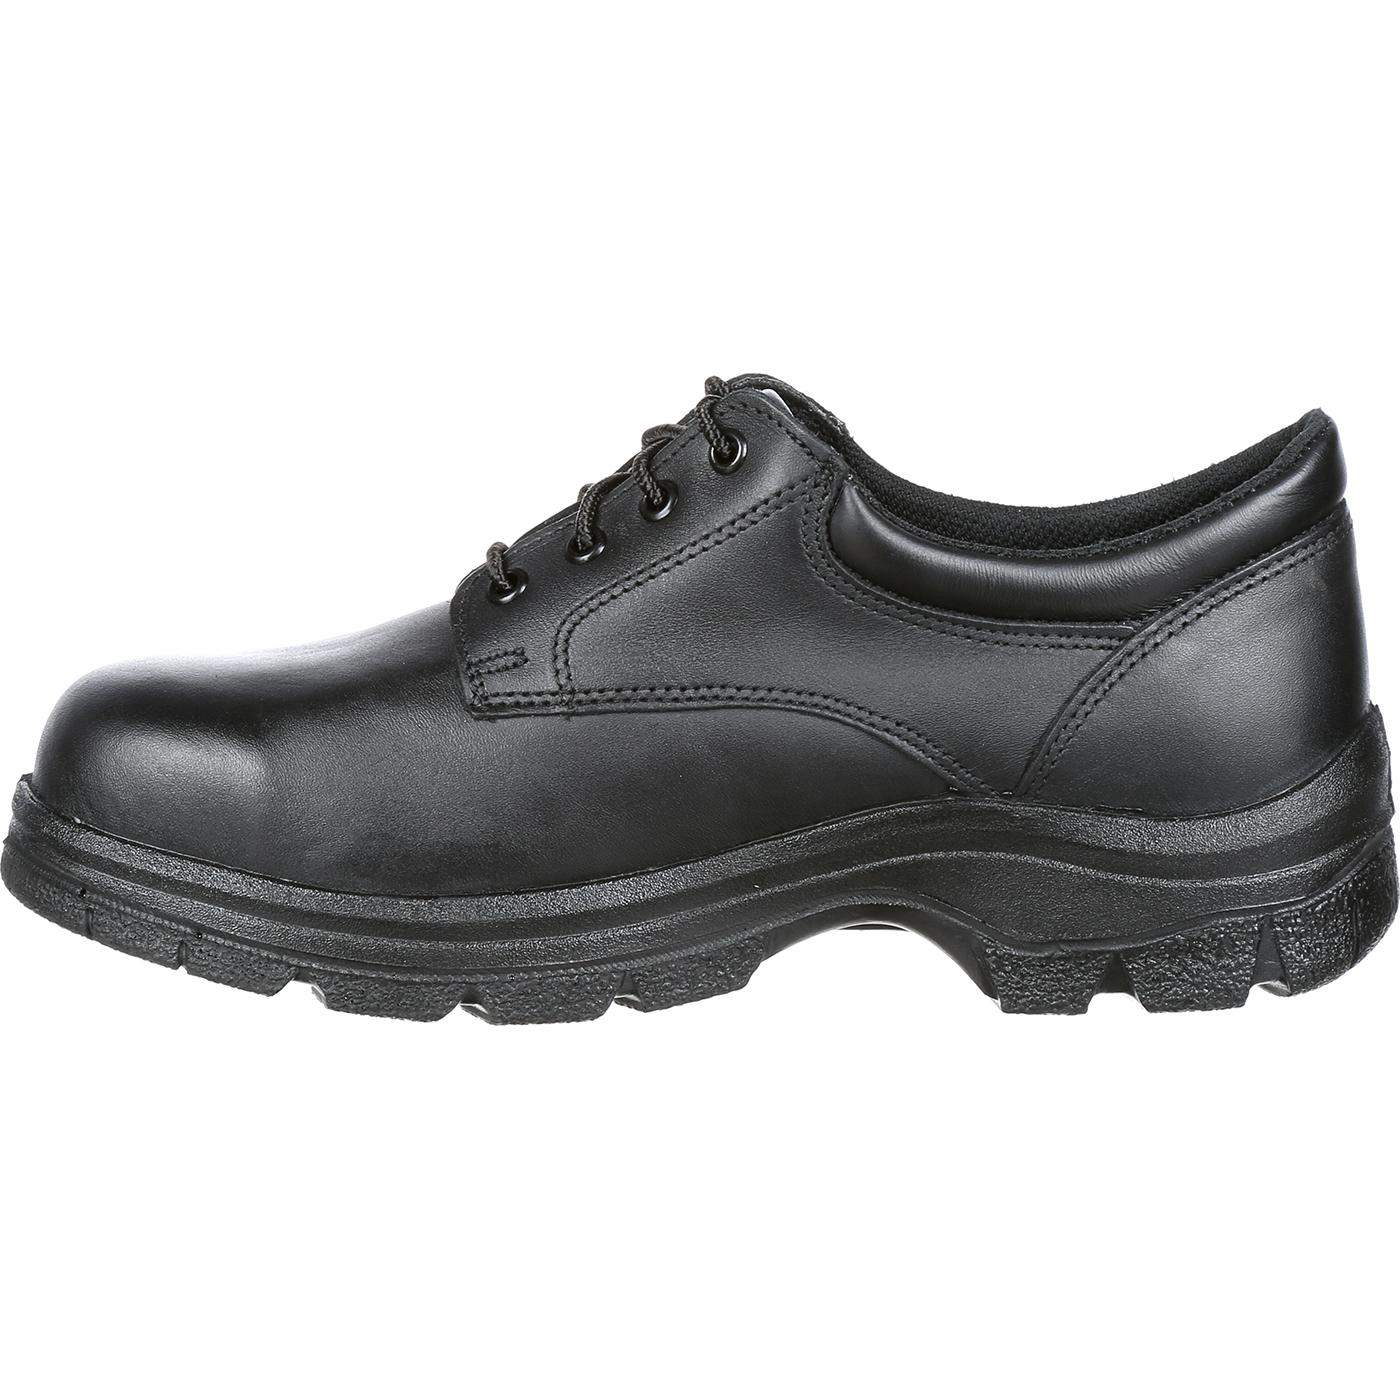 Black Oxford Duty Shoes